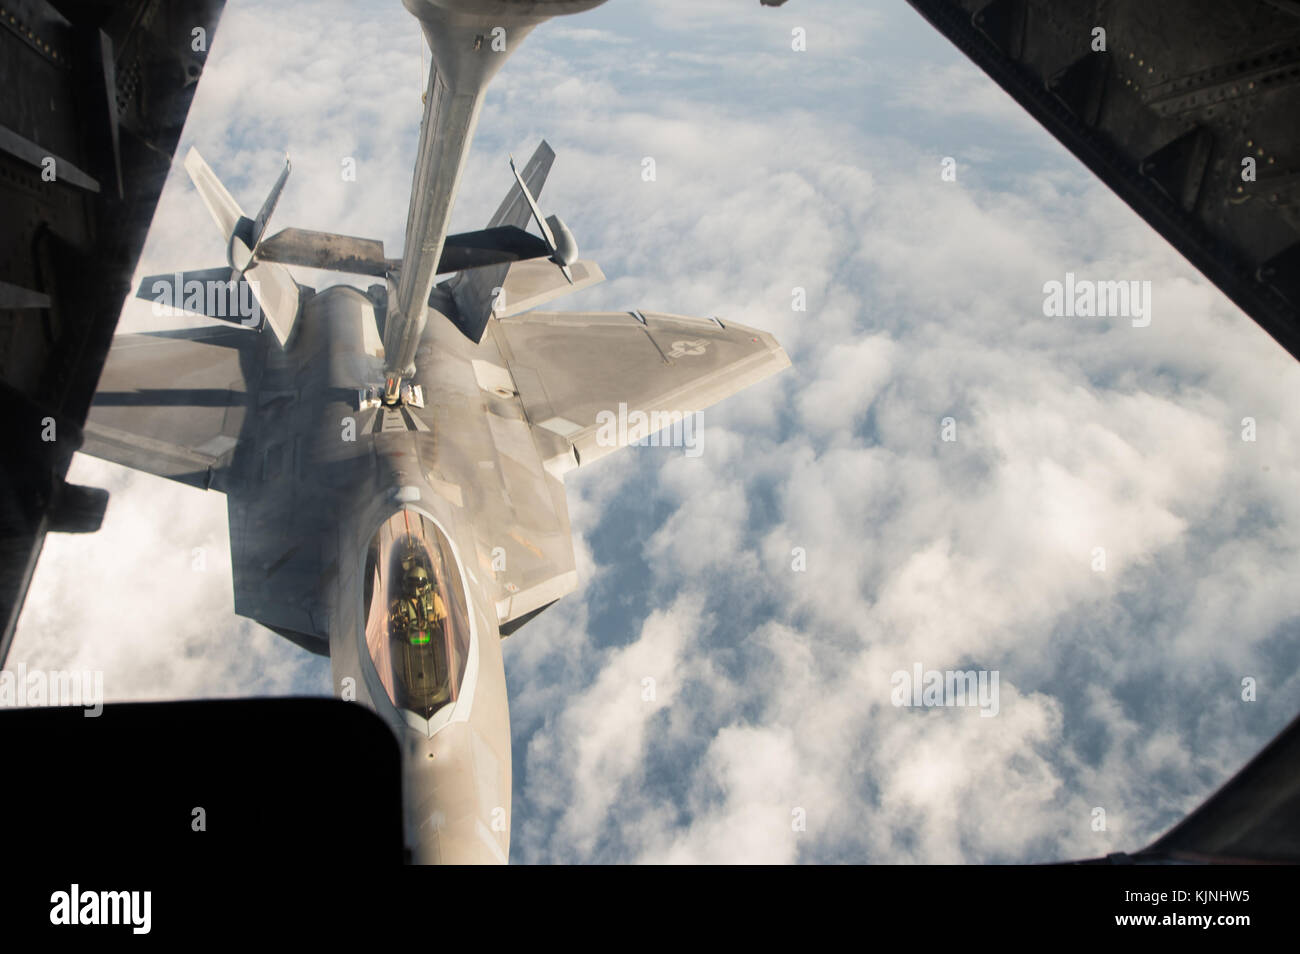 United States Air Force F-22 Raptor receives fuel from a KC-10 Extender over Syria, during a mission in support - Stock Image